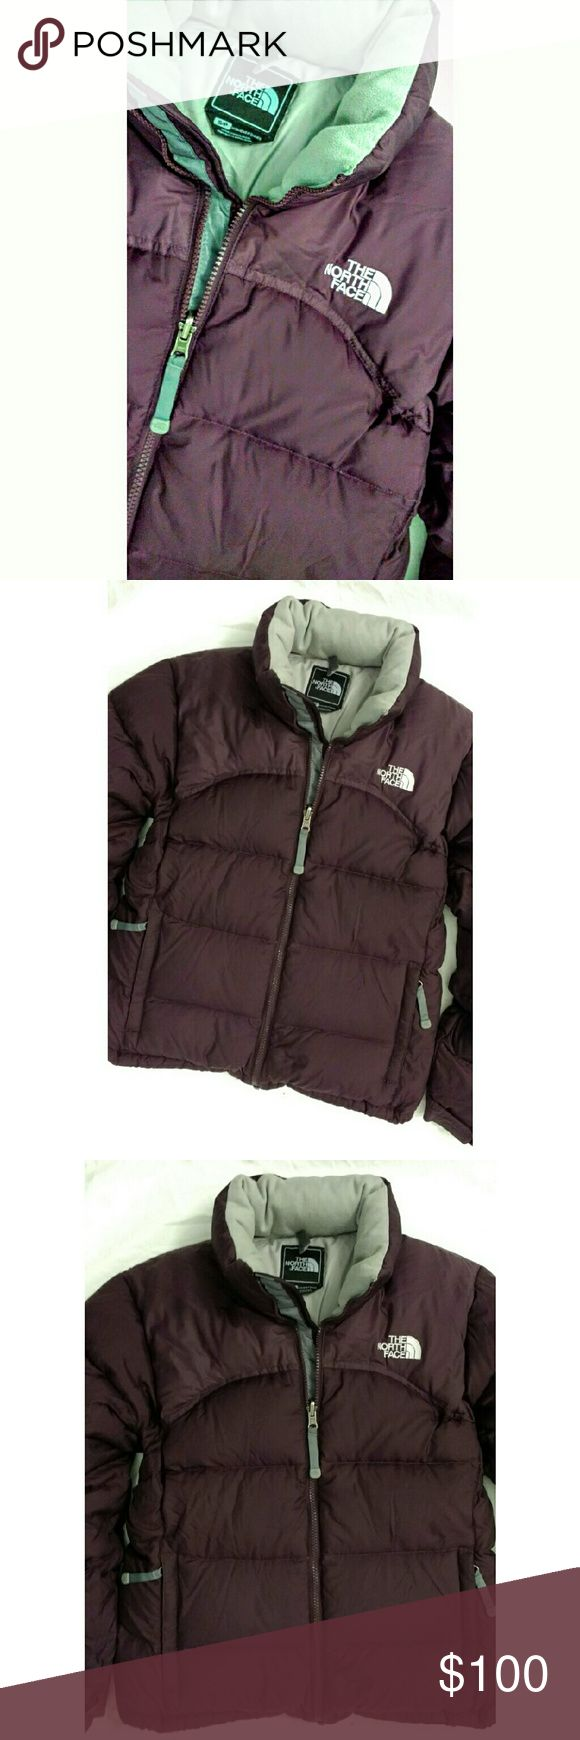 The North Face Nuptse Jacket TNF Coat. Beautiful maroon color with grey contrast & lining. 700 Fill Down. Extremely warm. No flaws. Excellent like new condition. North Face Jackets & Coats